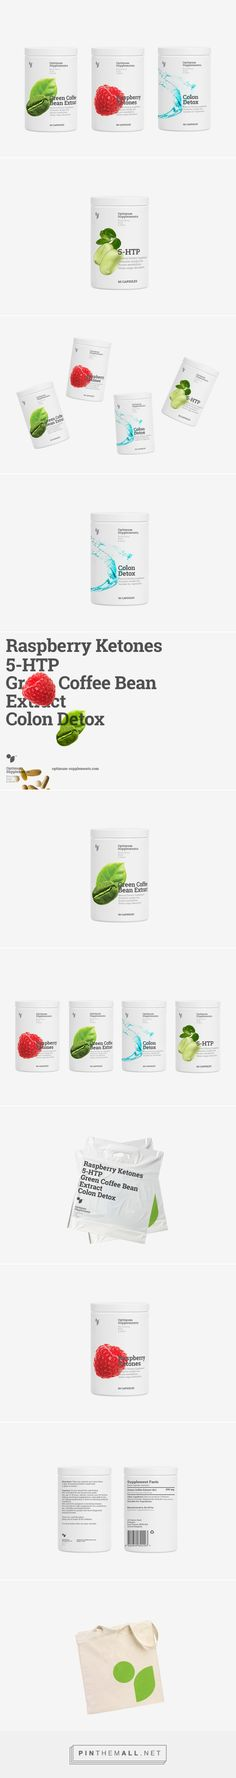 Optimum Supplements - Packaging of the World - Creative Package Design Gallery - http://www.packagingoftheworld.com/2016/03/optimum-supplements.html